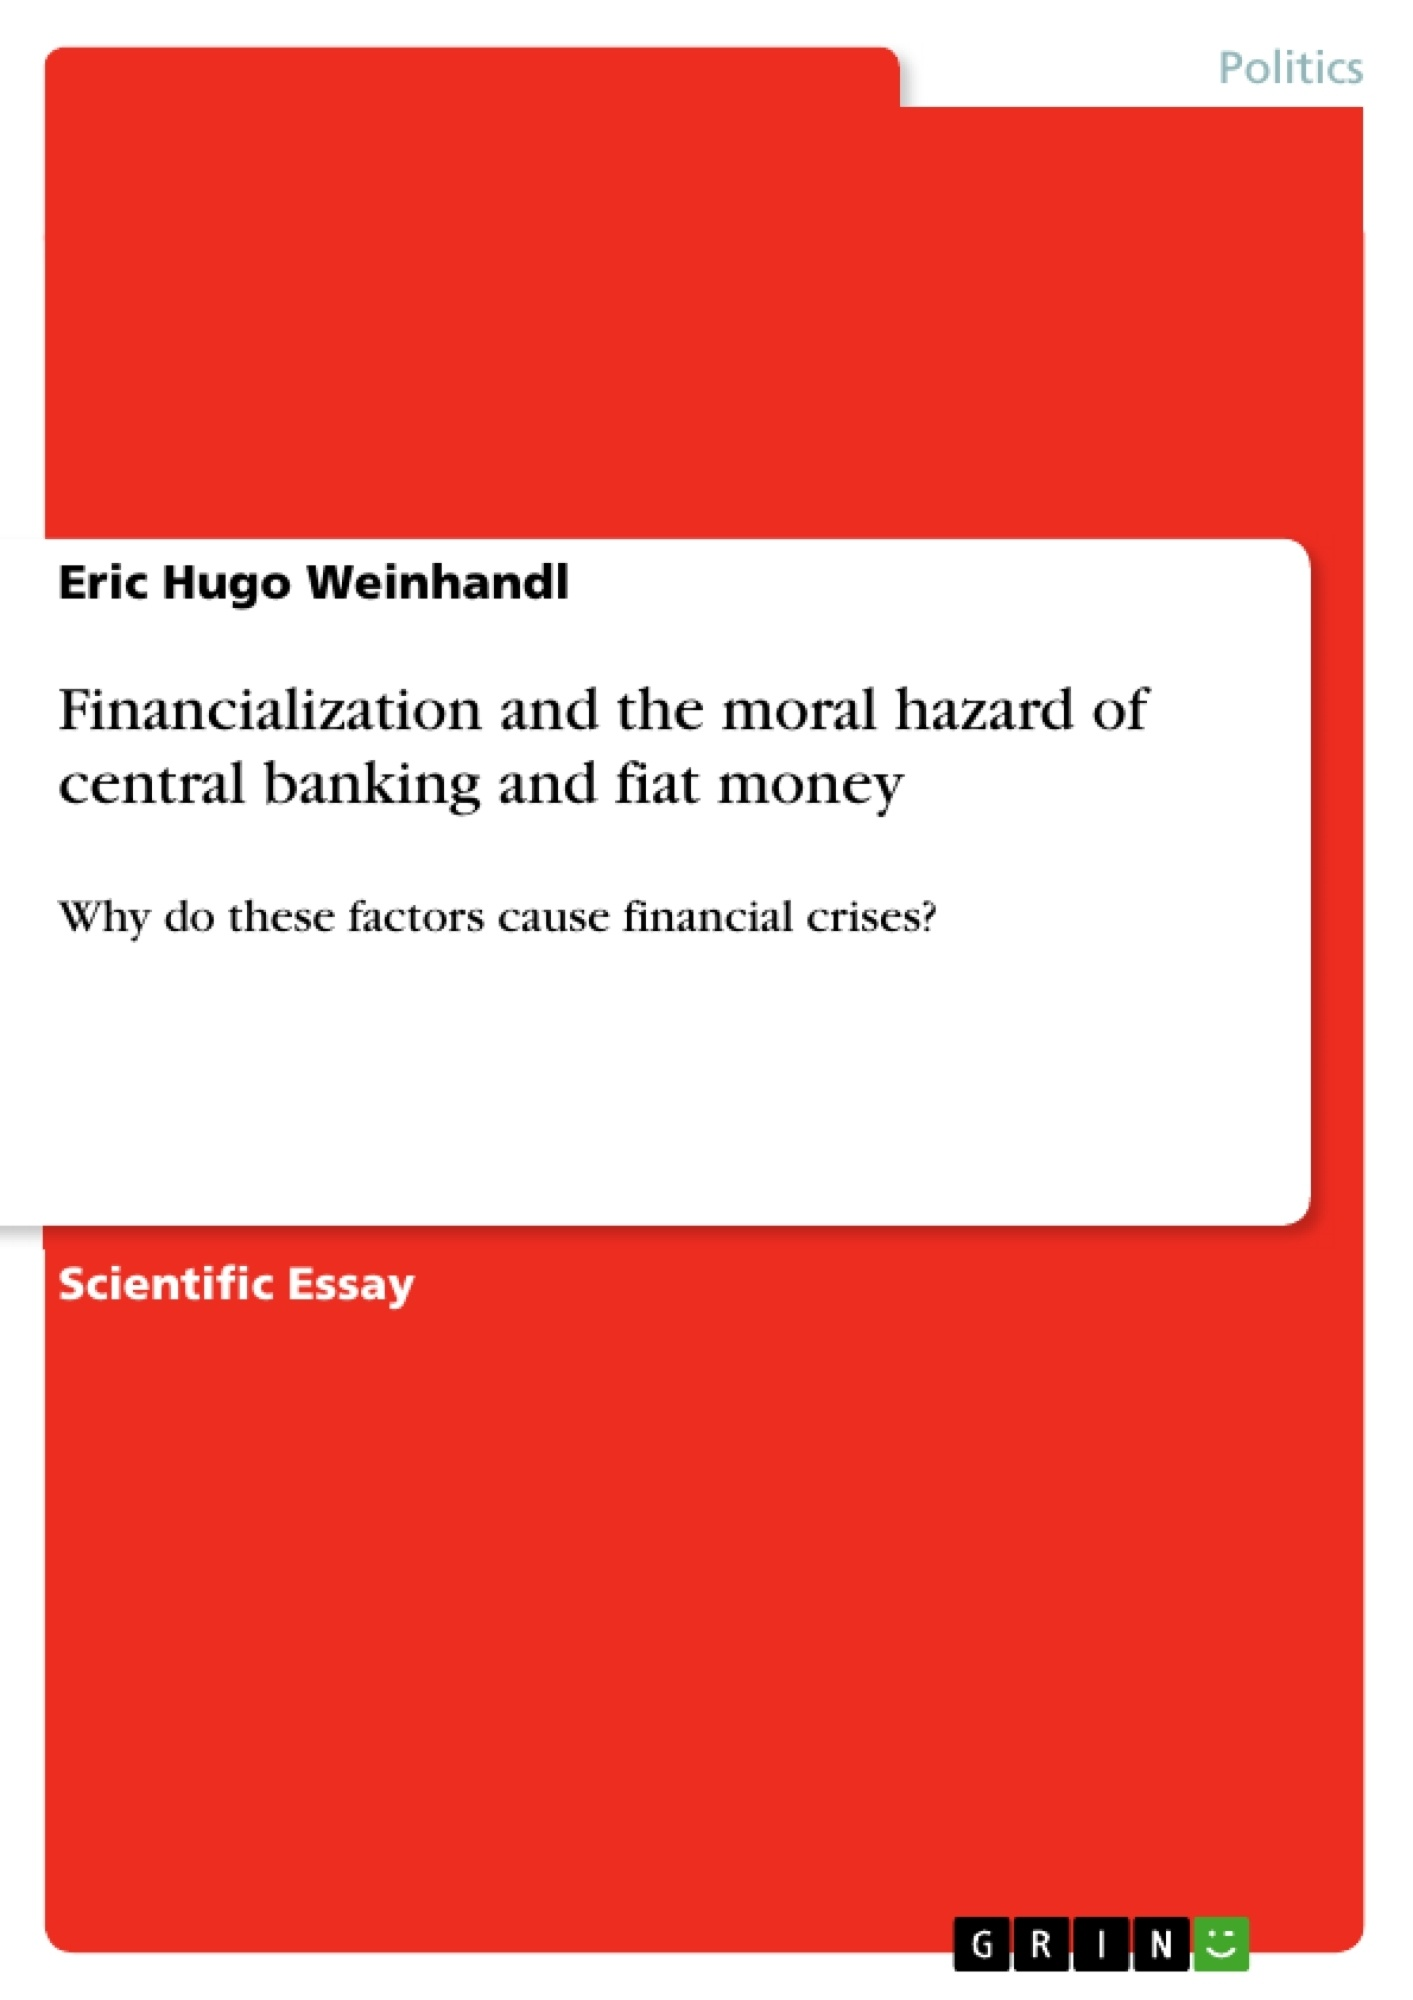 Title: Financialization and the moral hazard of central banking and fiat money